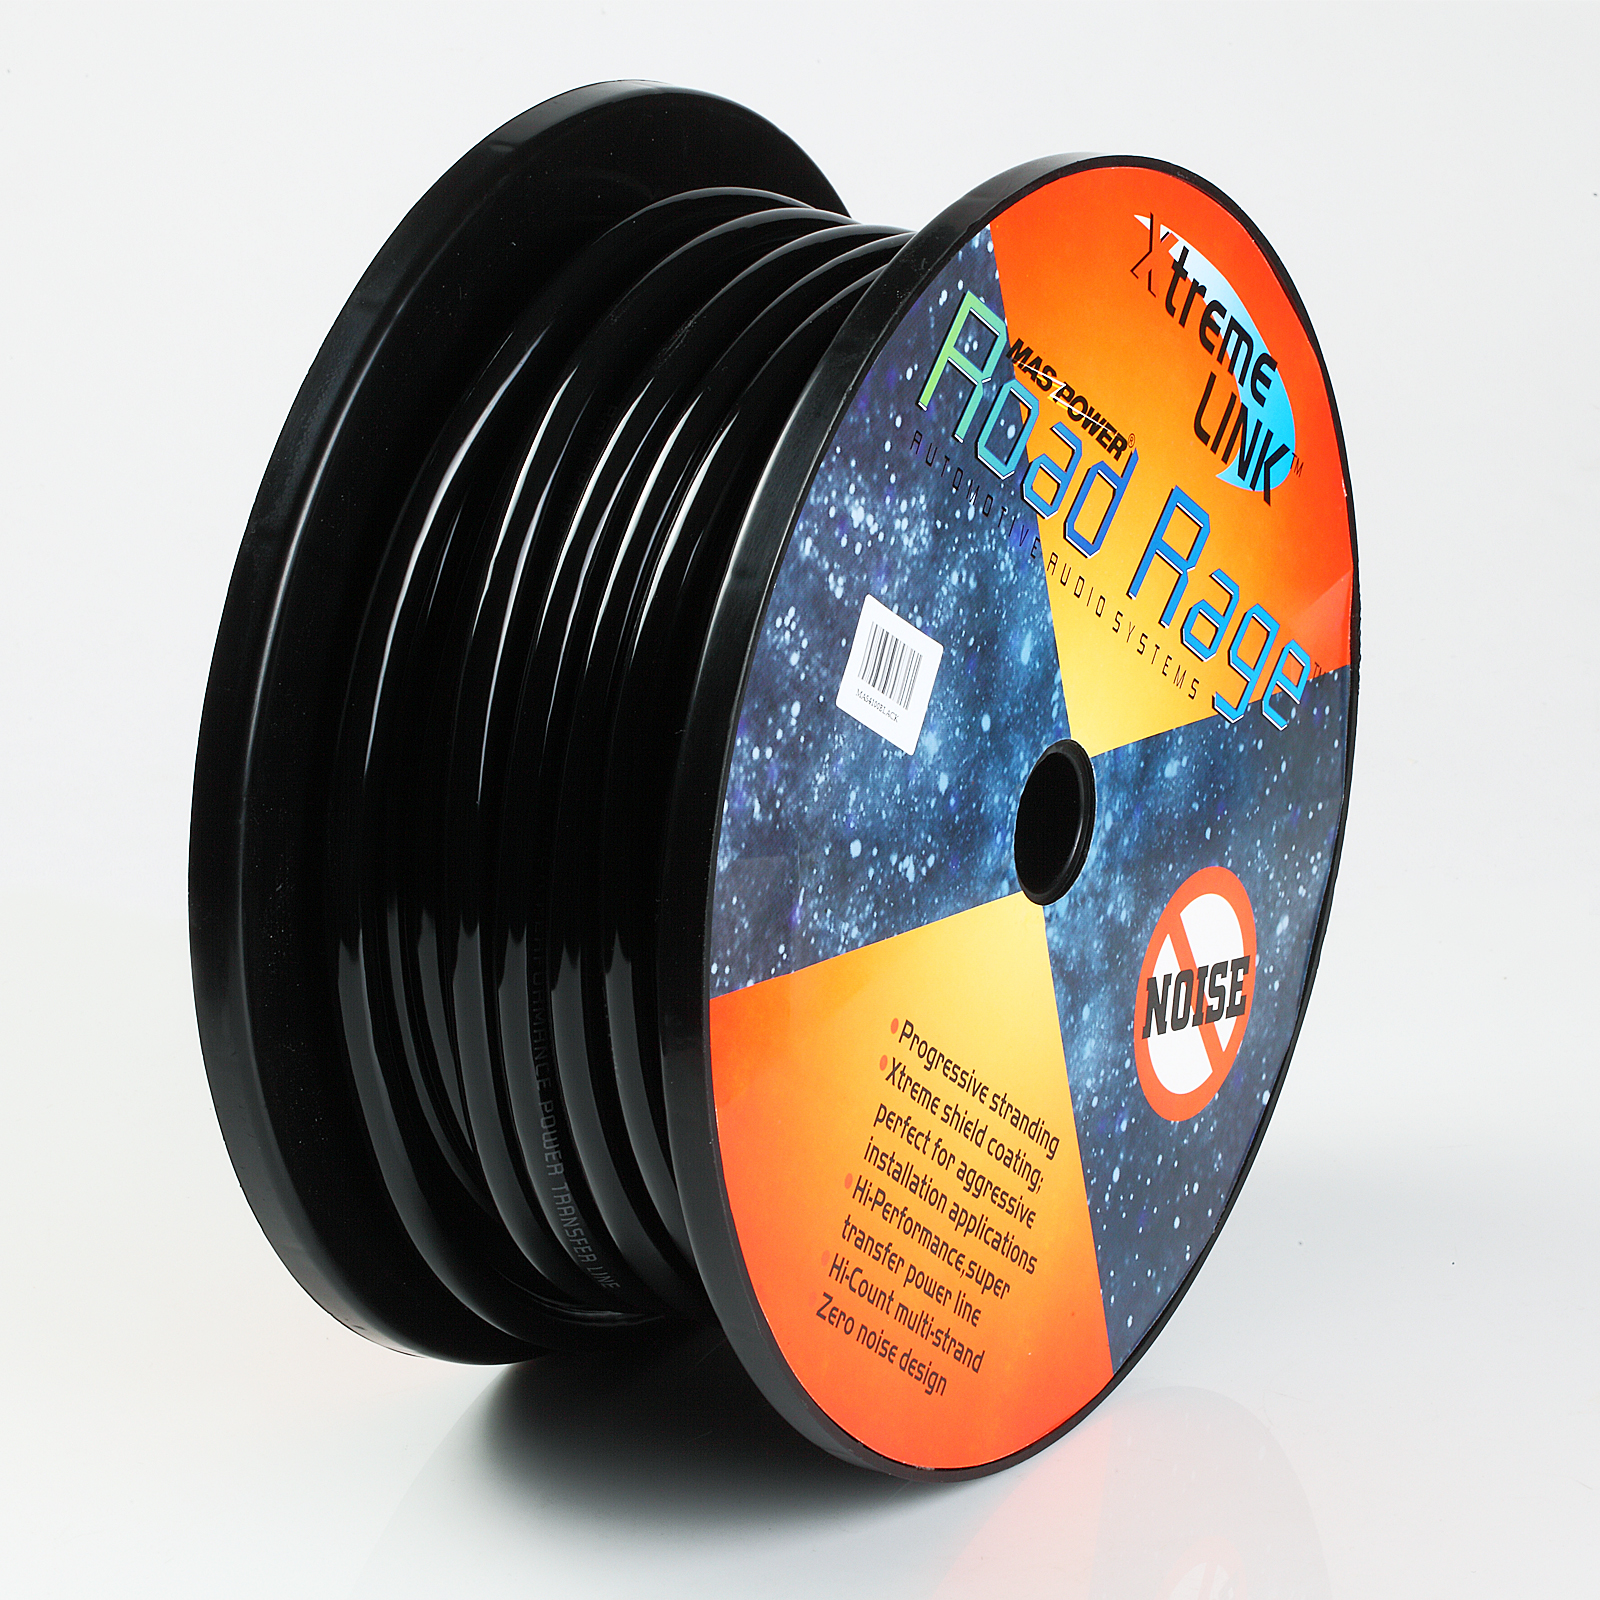 100FT BLACK HIGH PERFORMANCE PRIMARY WIRE 14 GAUGE AWG MADE IN USA